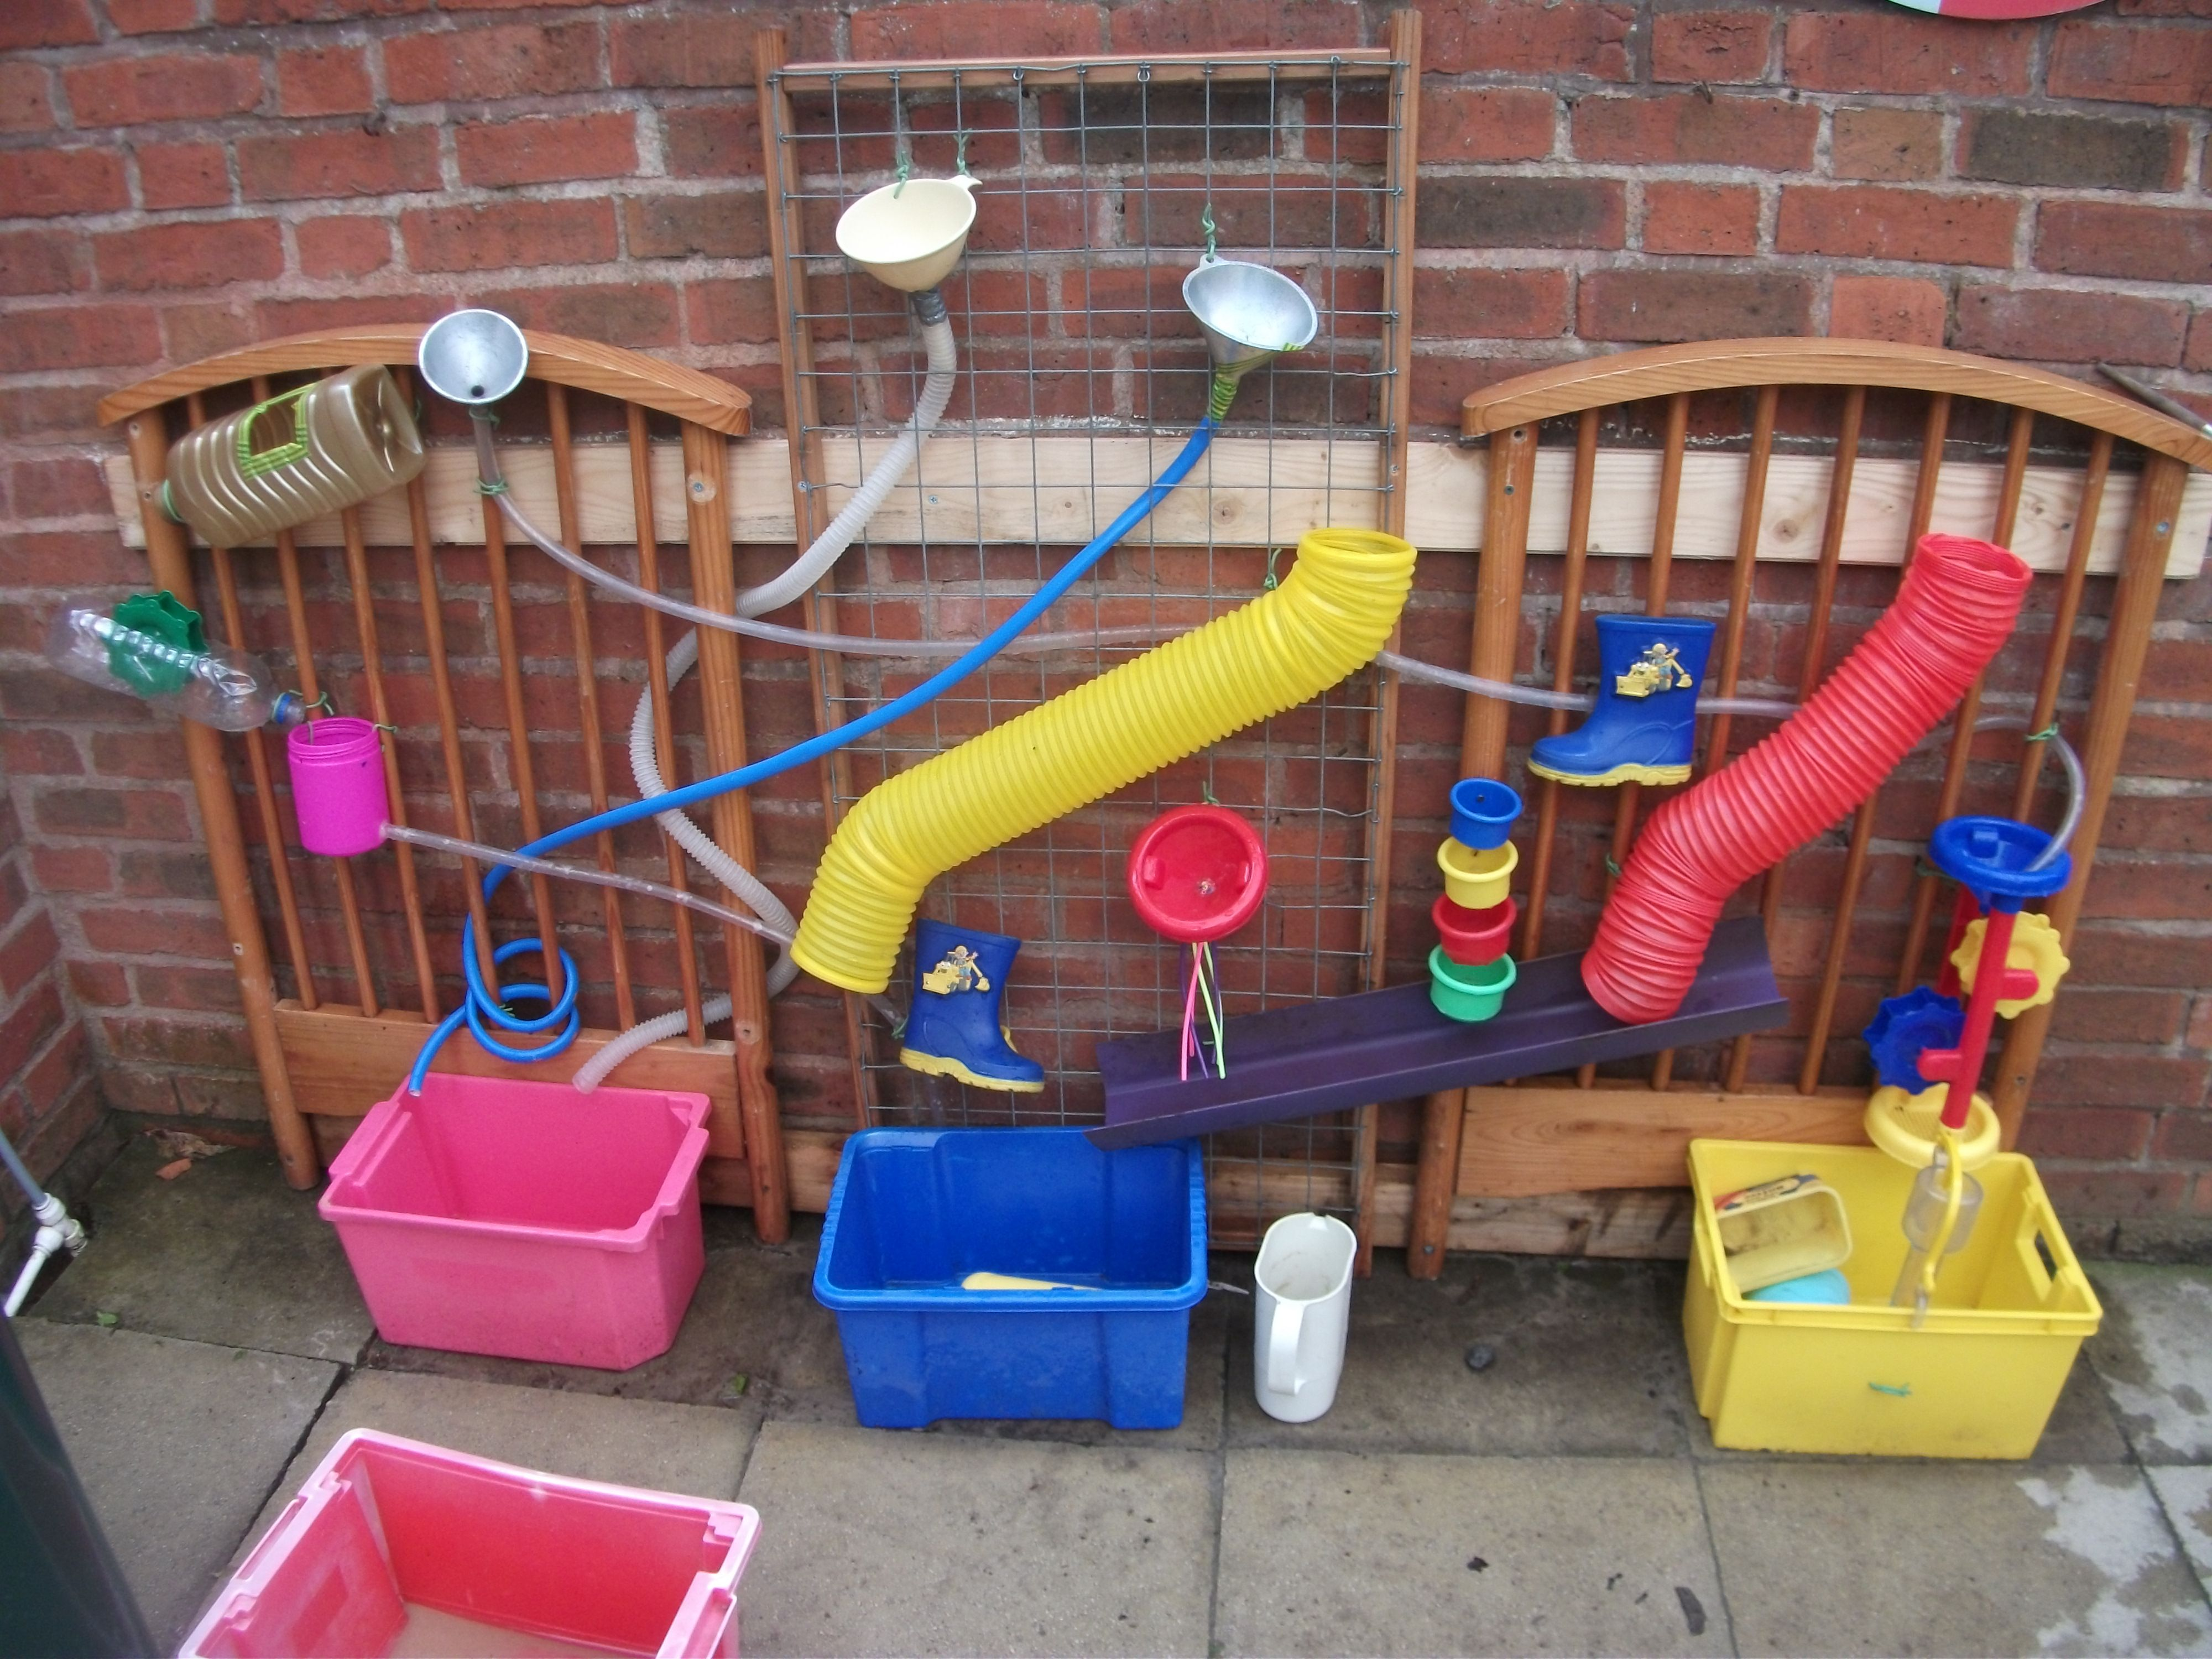 My Own Adaptation Of A Water Wall Recycling An Old Cot And Using Old Wellies Too Water Walls Natural Playground Outdoor Play Areas